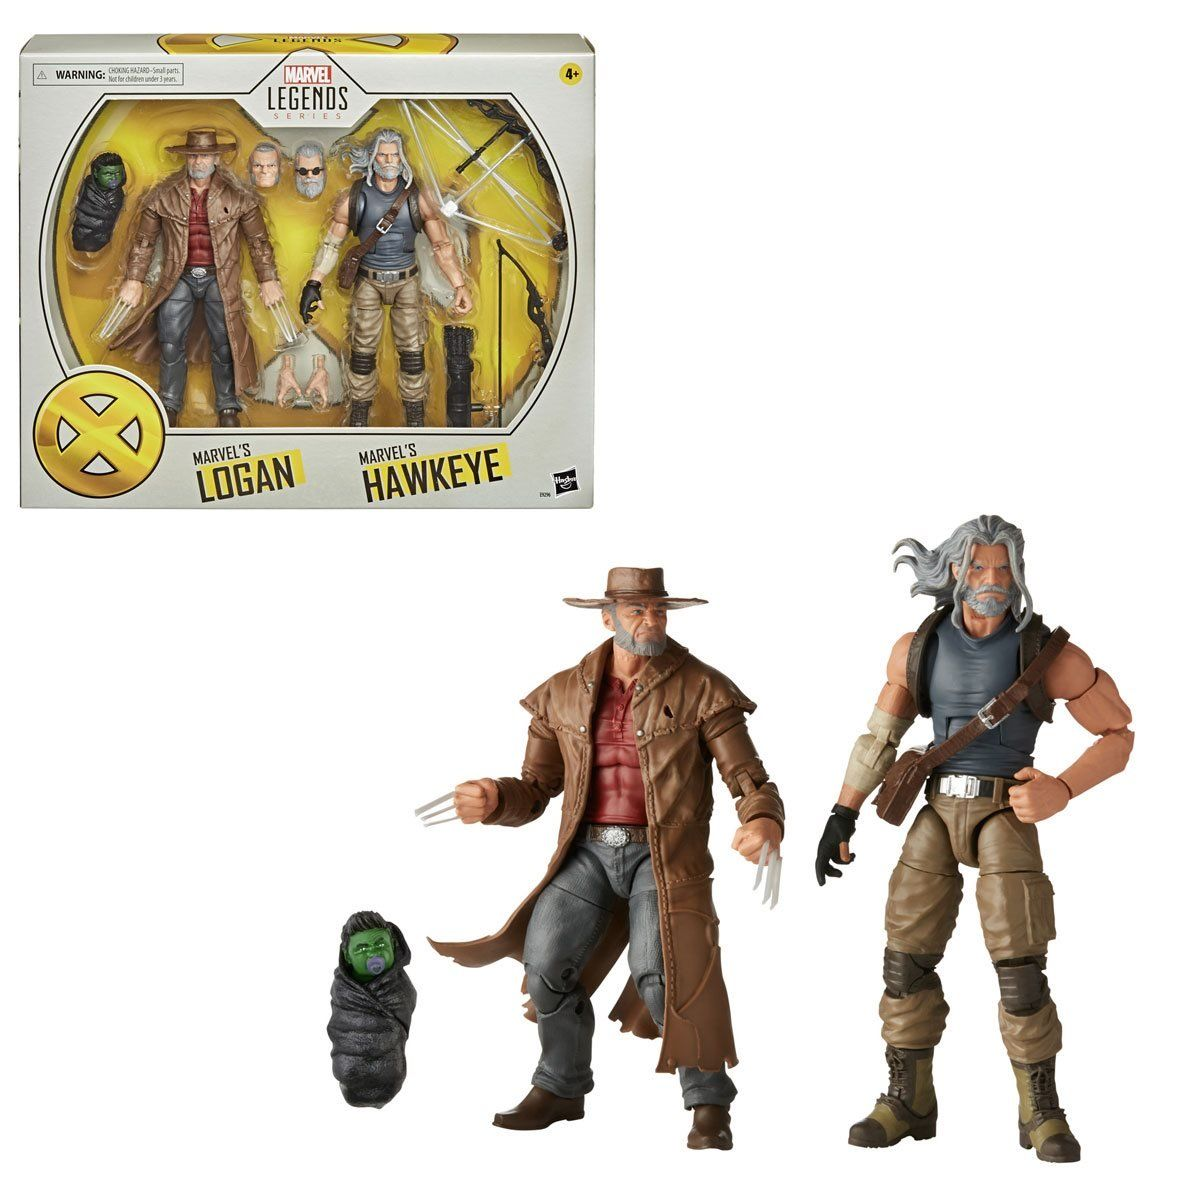 Marvel Legends X-Men 20th Anniversary Old Man Logan and Old Man Hawkeye 2 pack